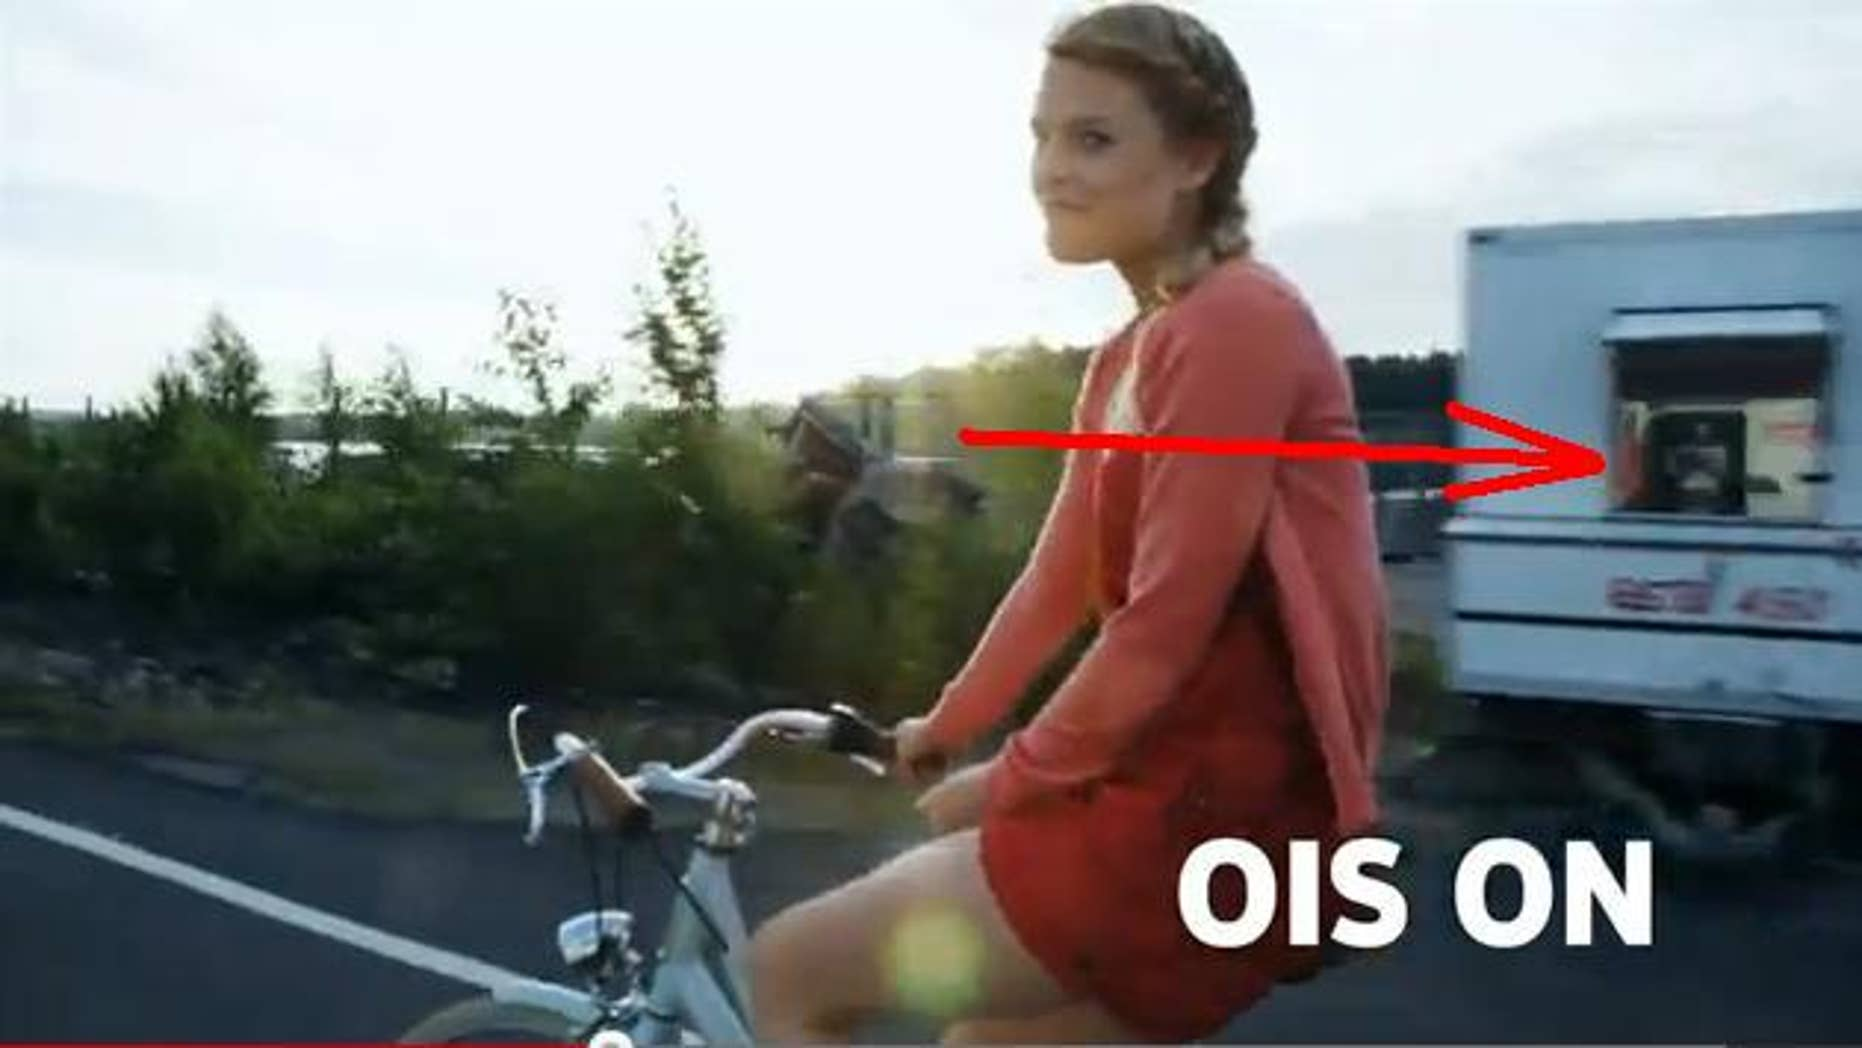 A still image from a promotional video for the Nokia 920, ostensibly shot by the phone itself, reveals the actual camera rig in a passing window.